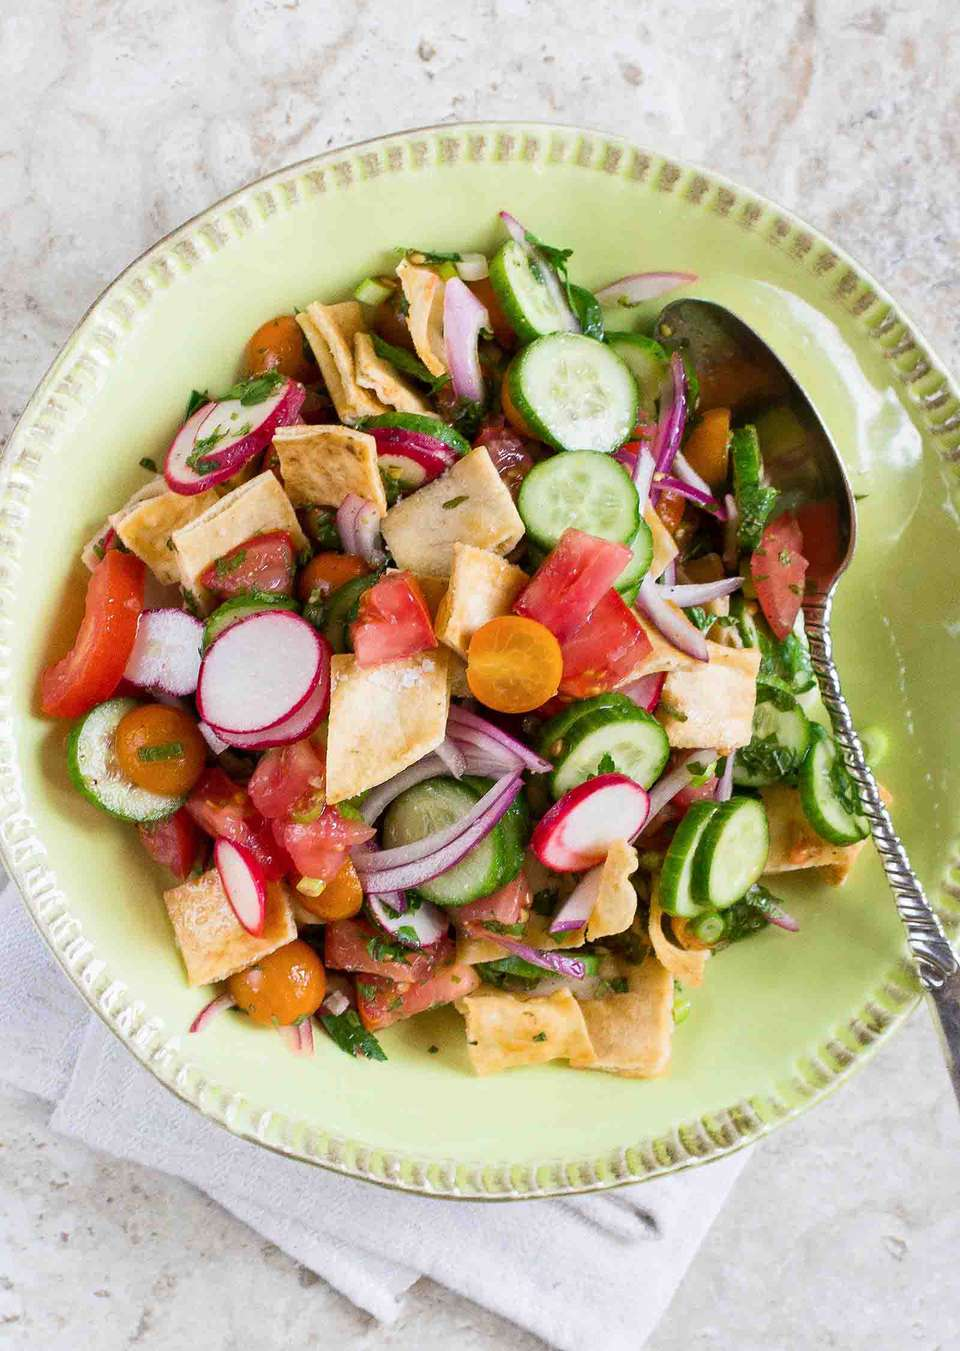 Fattoush made with baked pita chips, tomatoes, radishes, cucumbers, and a zesty vinaigrette in a round bowl